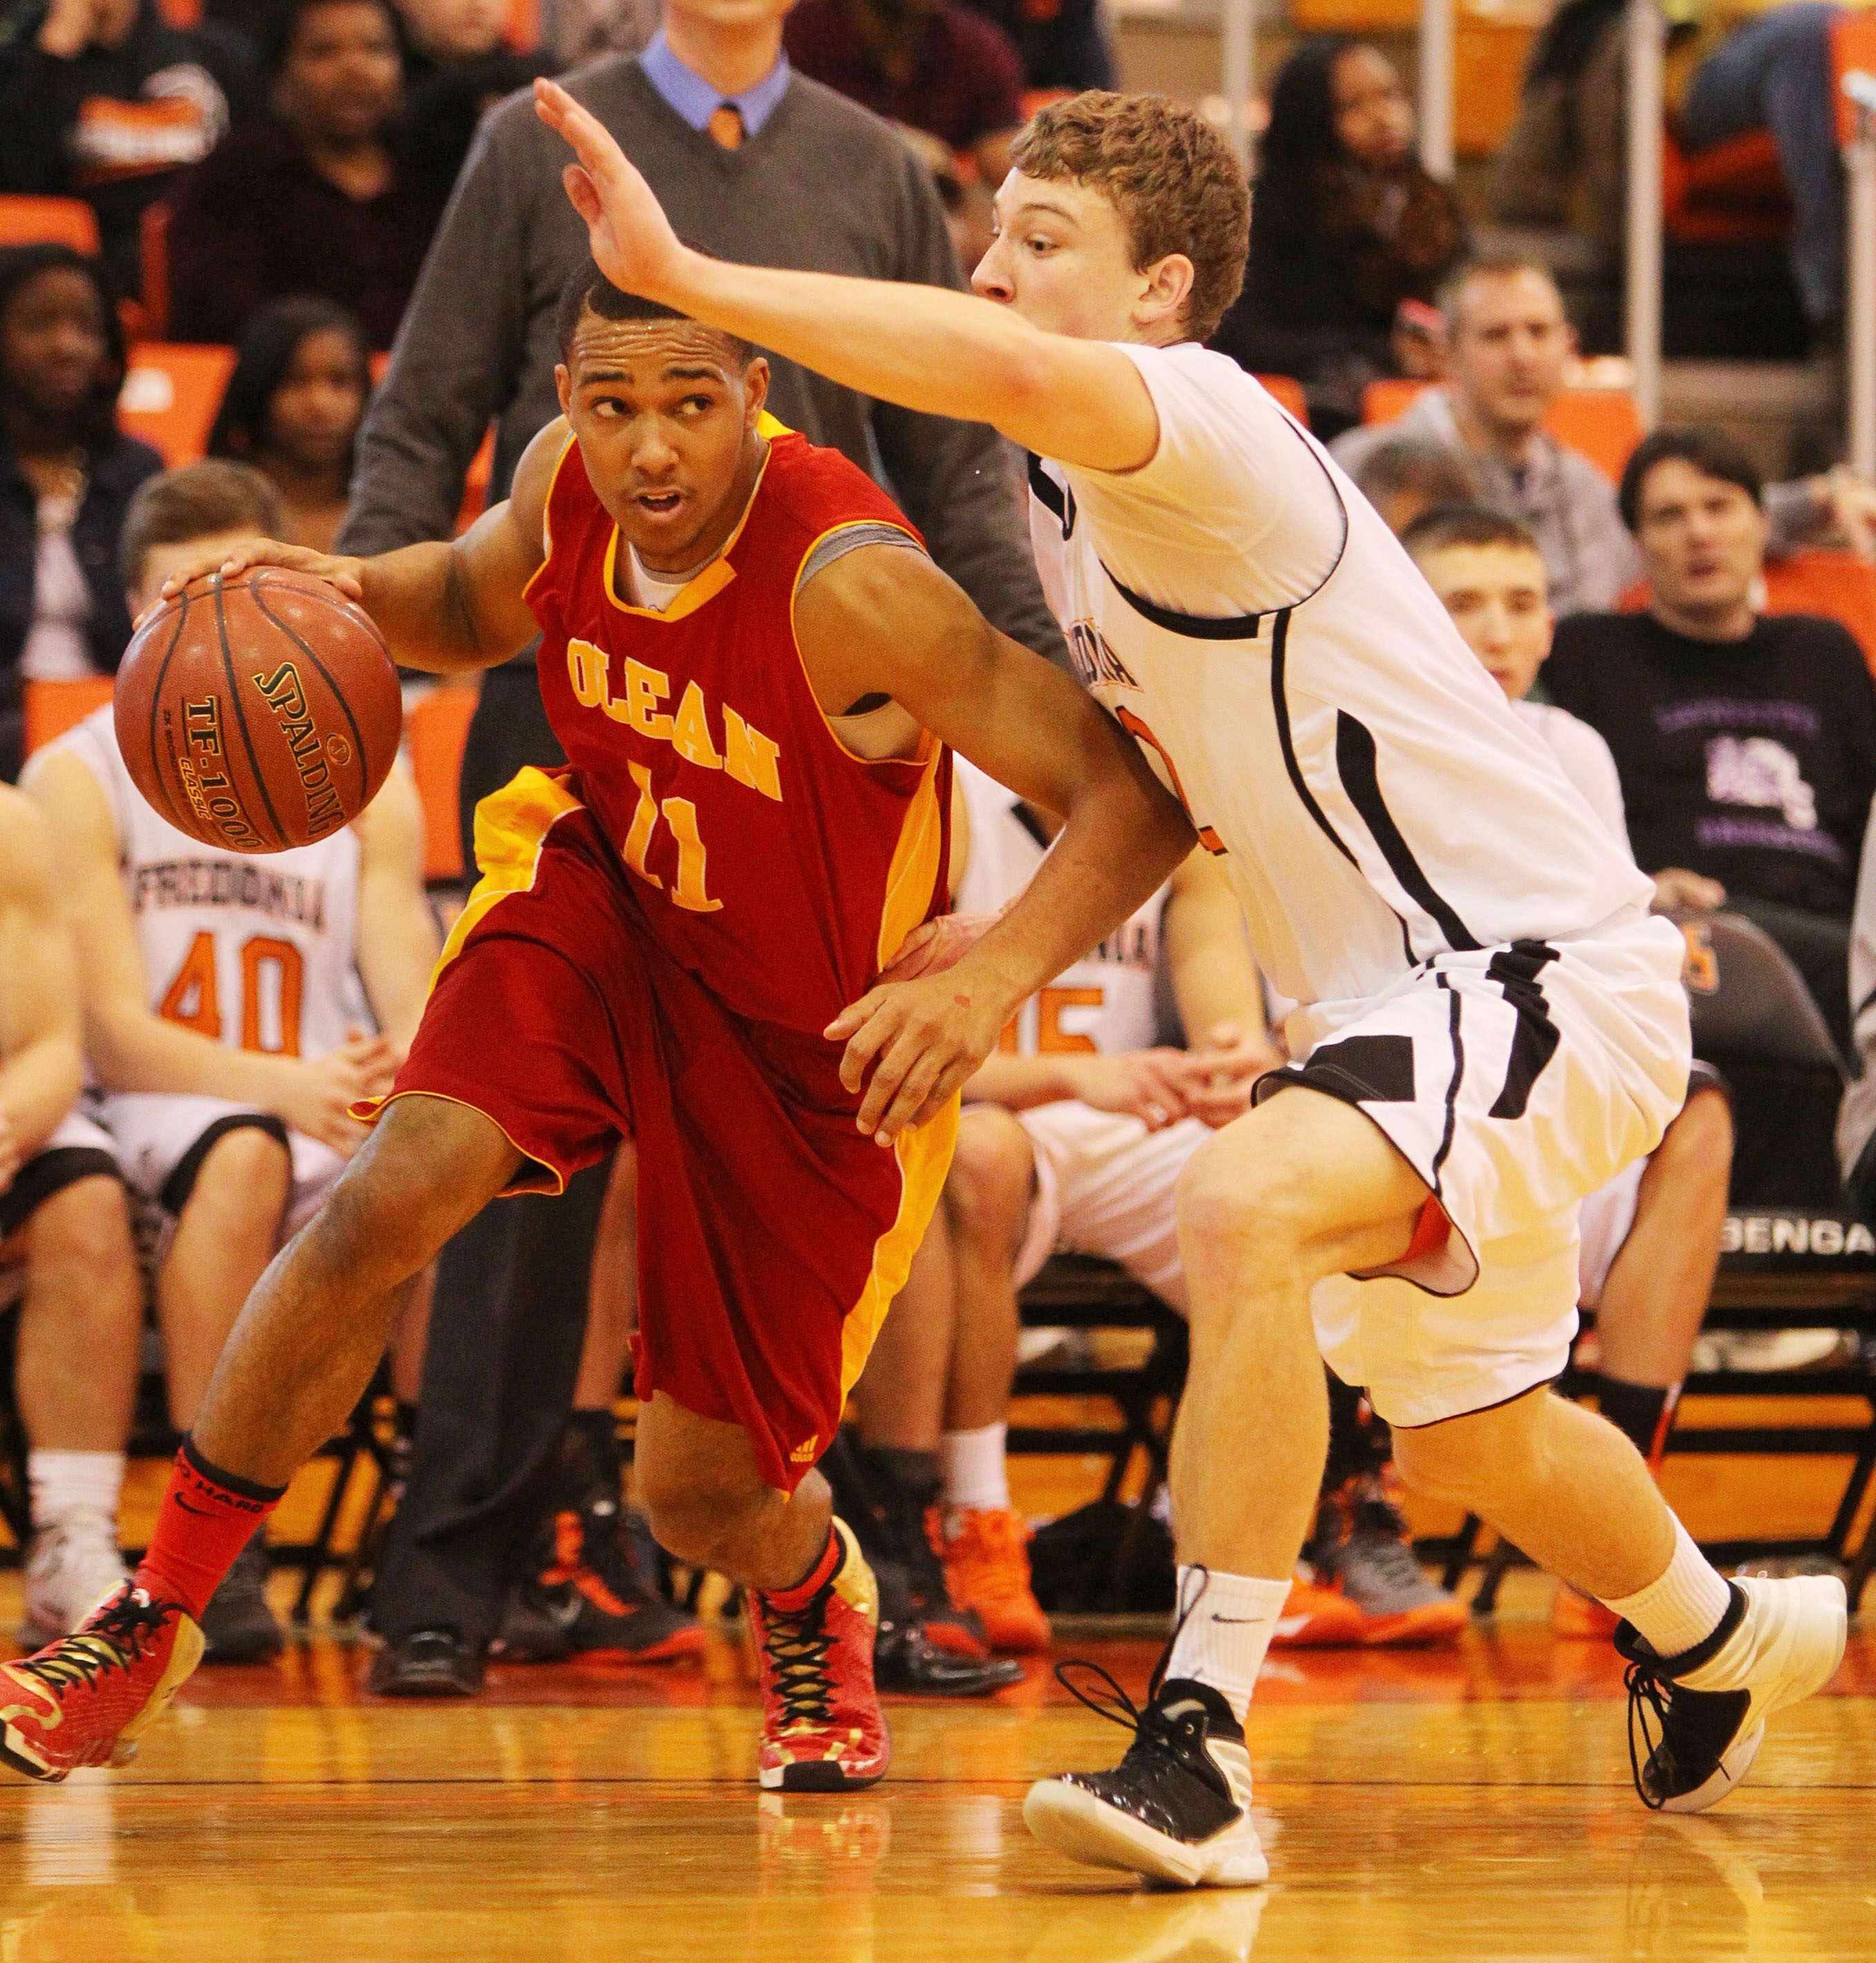 Wil Bathurst, who will play collegiately at Cornell, is a key part of the Olean offense. The Huskies are three-time sectional champions.